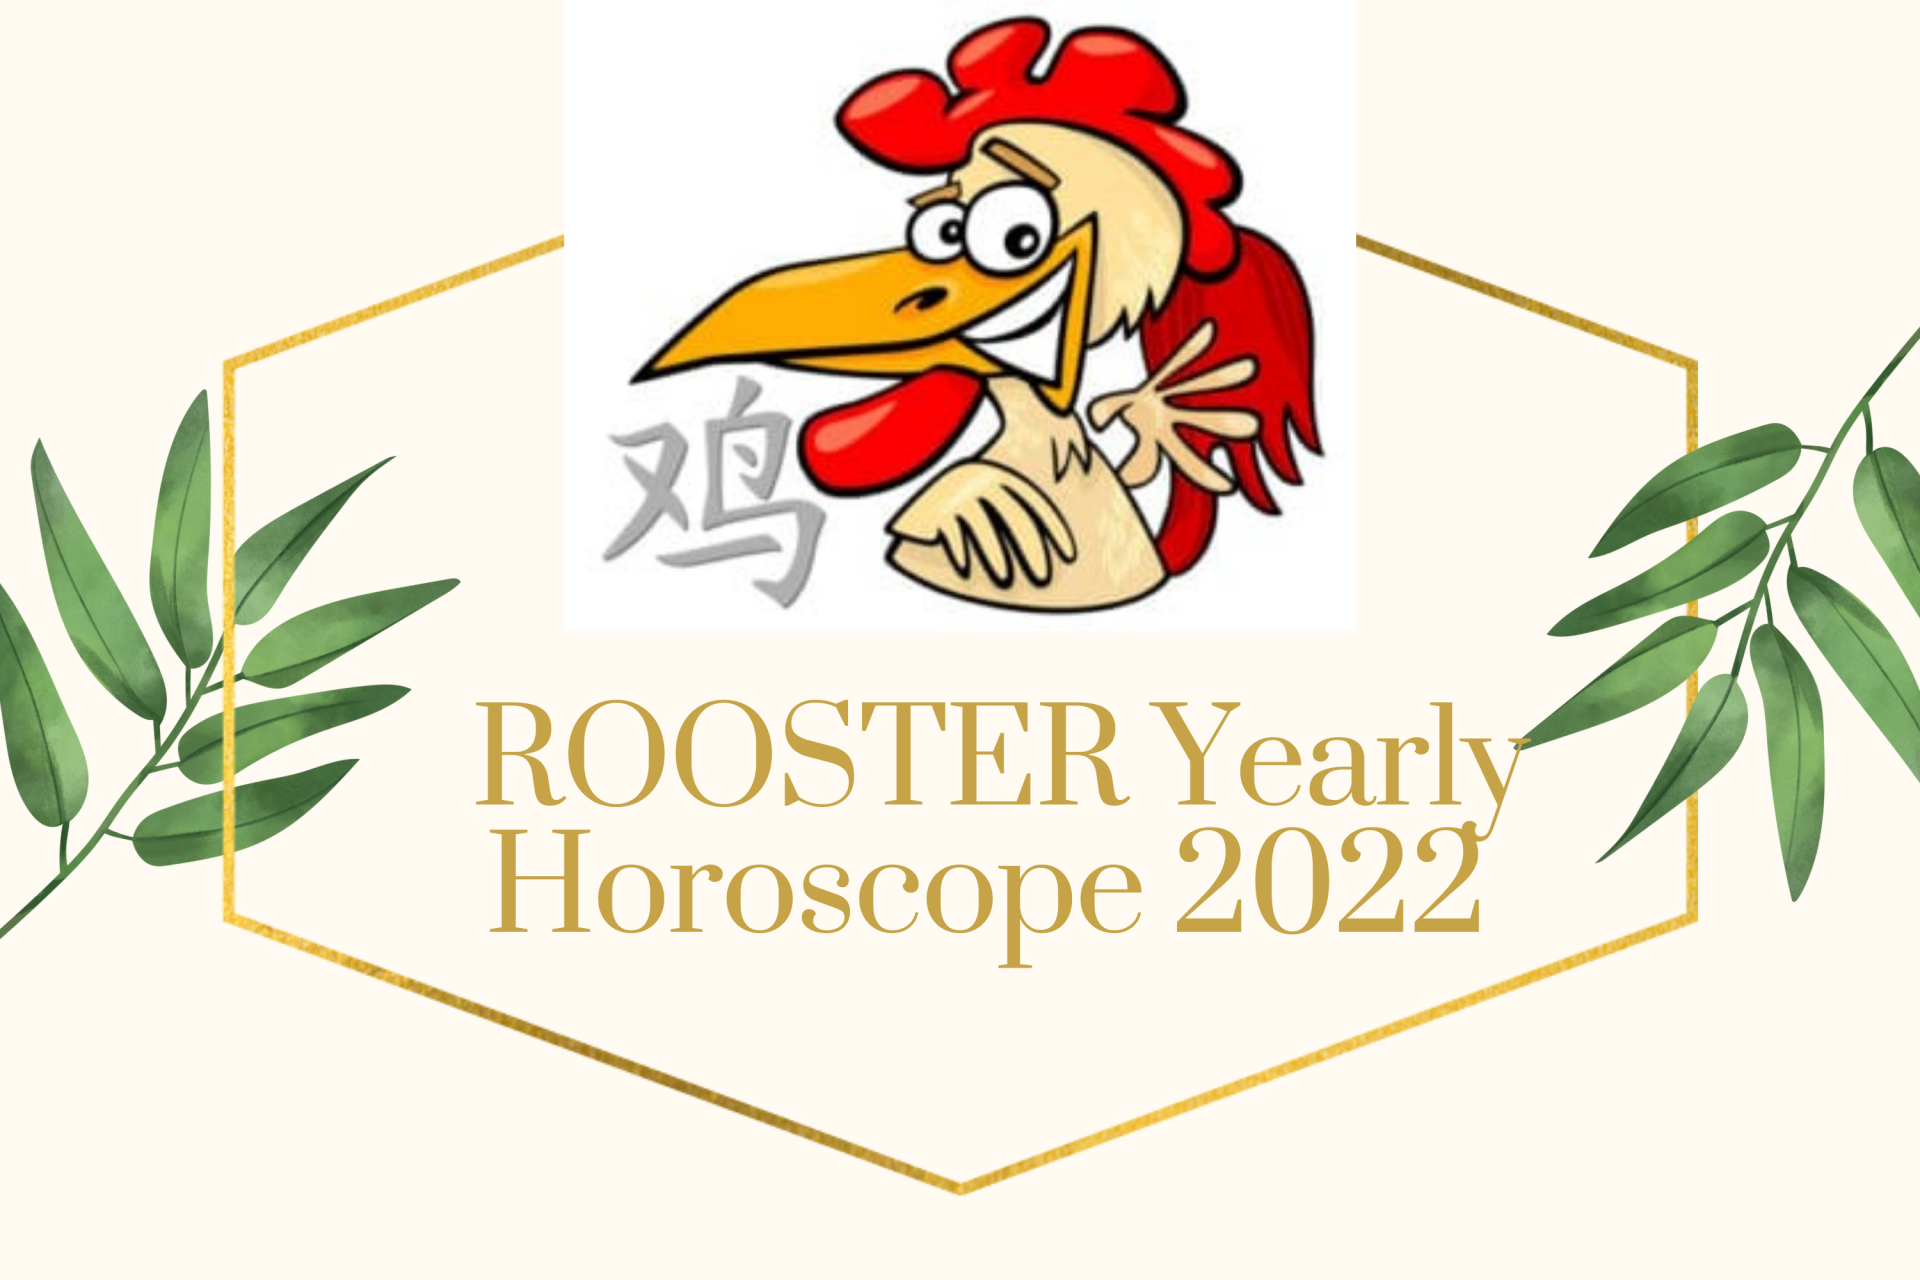 ROOSTER Yearly Horoscope 2022 – Feng Shui Prediction for Love, Money, Career and Health